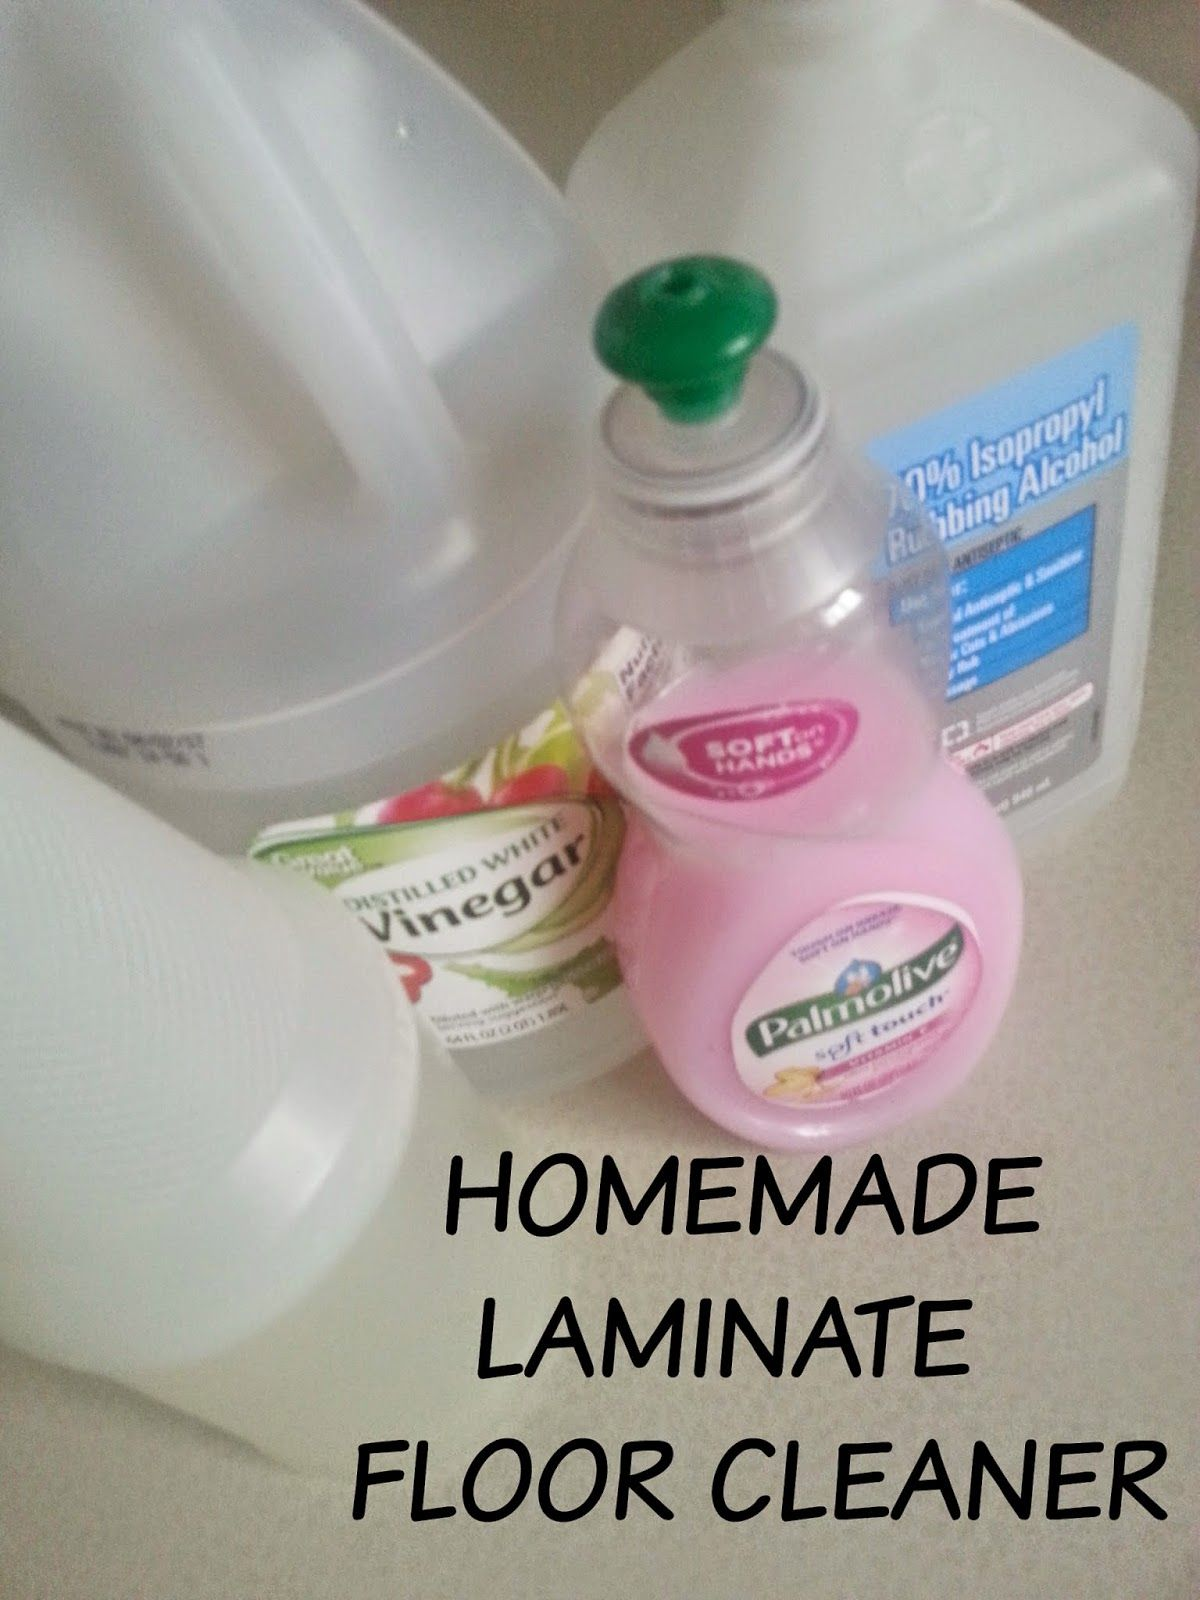 Homemade Laminate Floor Cleaner 1 Cup Water 1 Cup Rubbing Alcohol 1 Cup White Vinegar 1